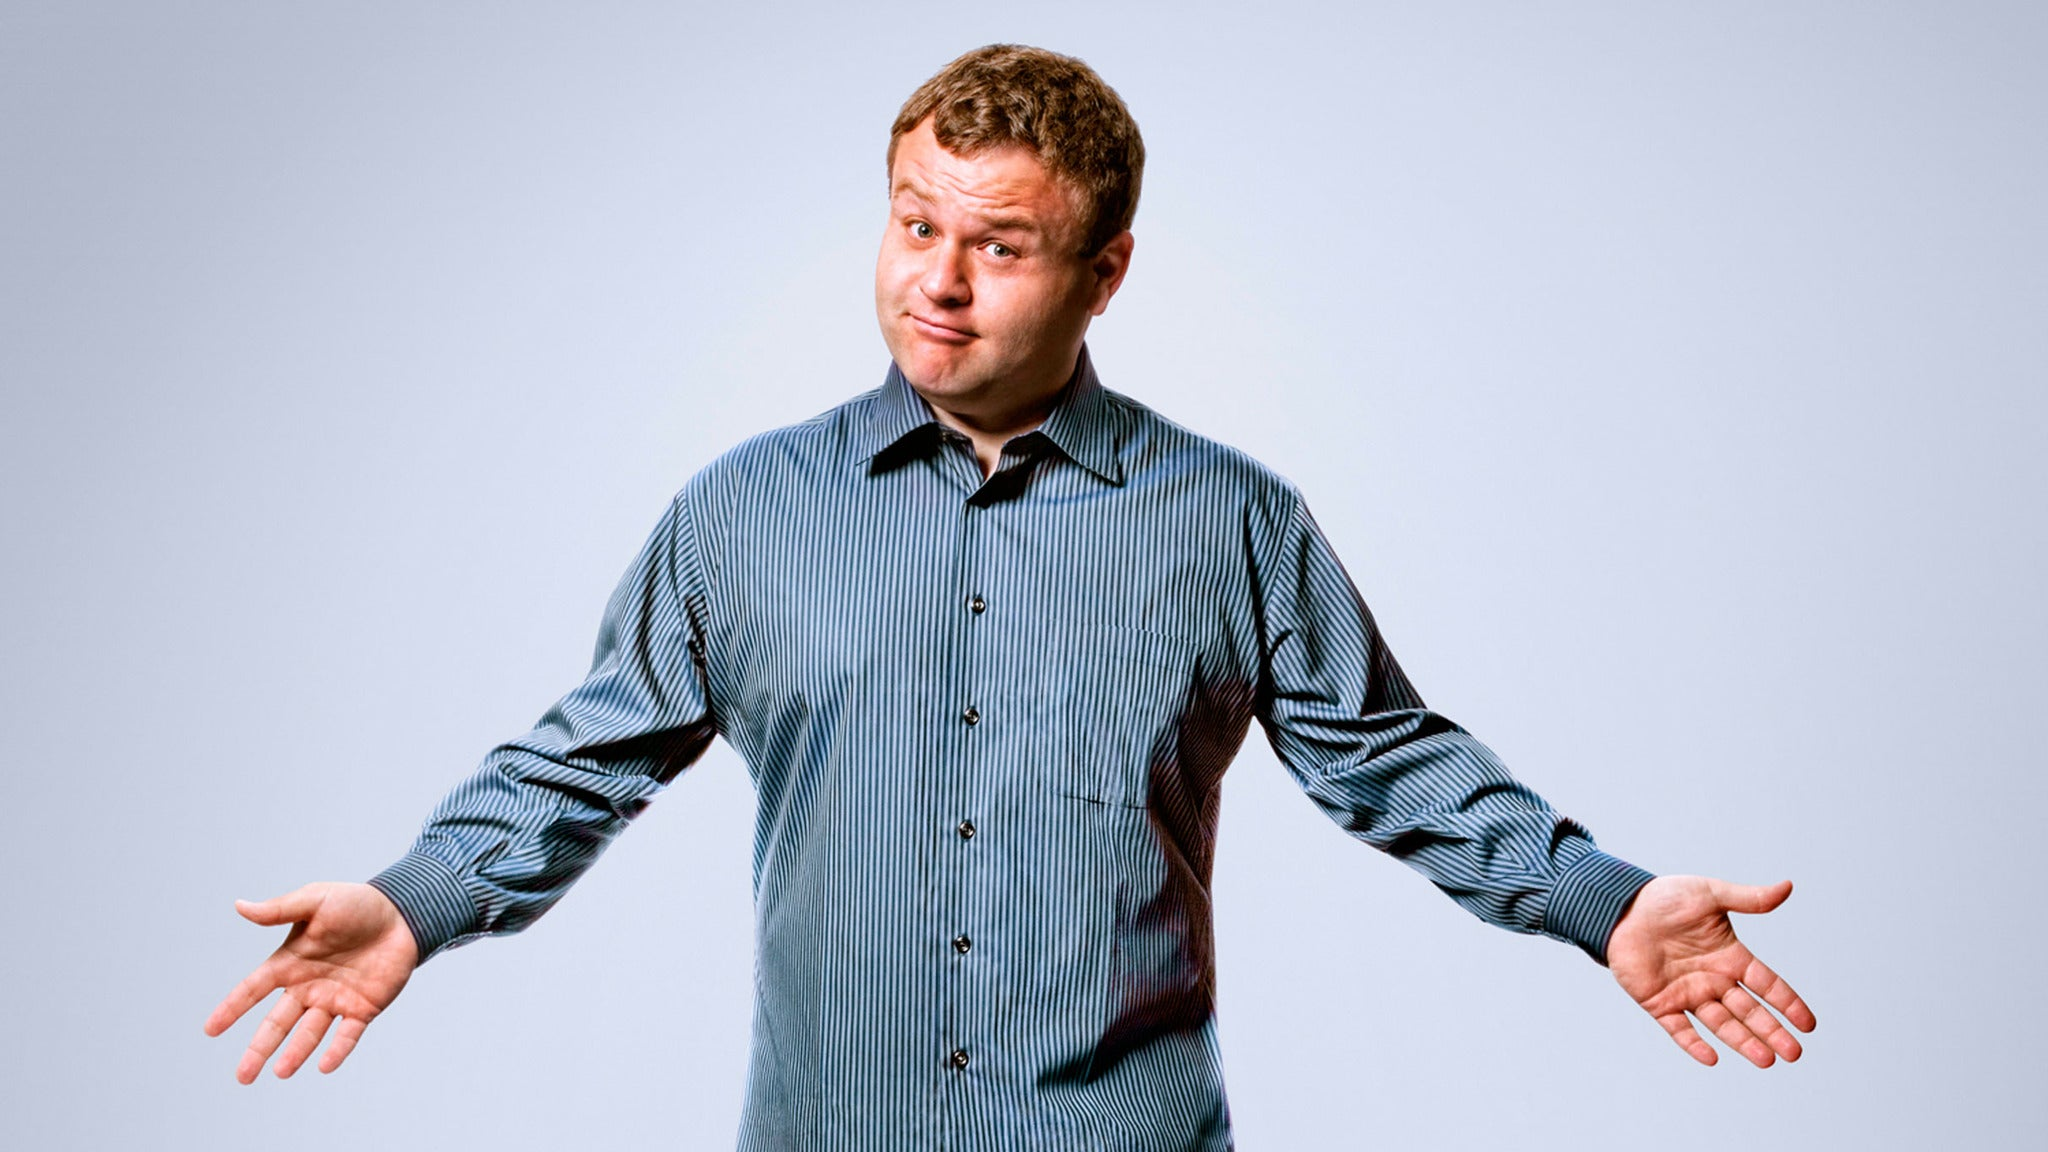 Frank Caliendo at The Fox Theater at Foxwoods Resort Casino - Mashantucket, CT 06355